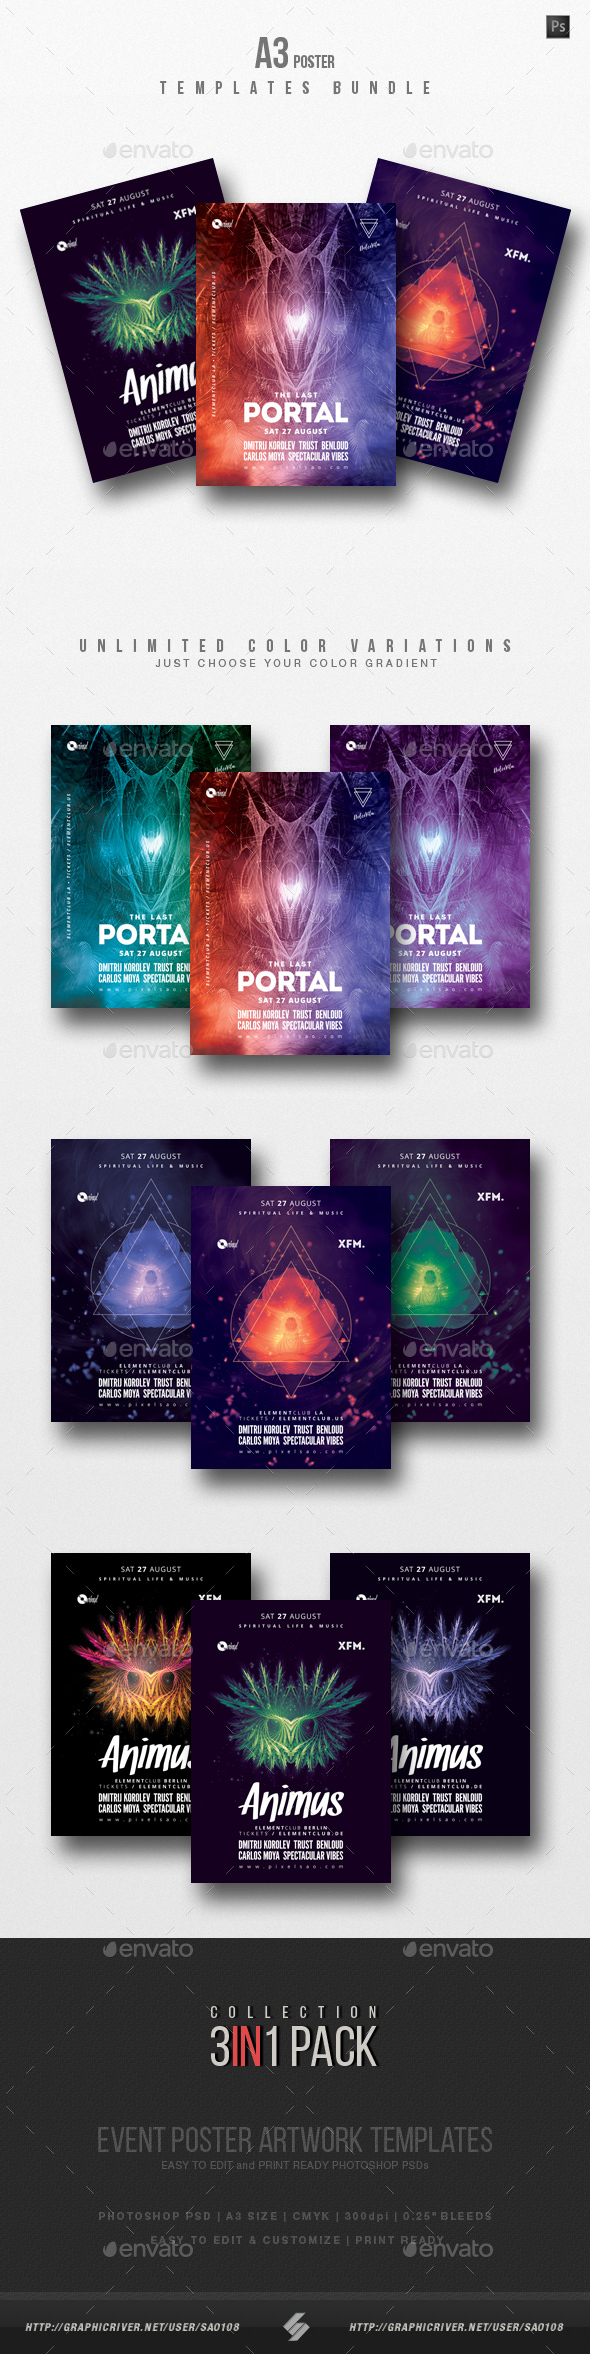 Progressive Sound vol.6 - Party Flyer / Poster Templates Bundle - Clubs & Parties Events